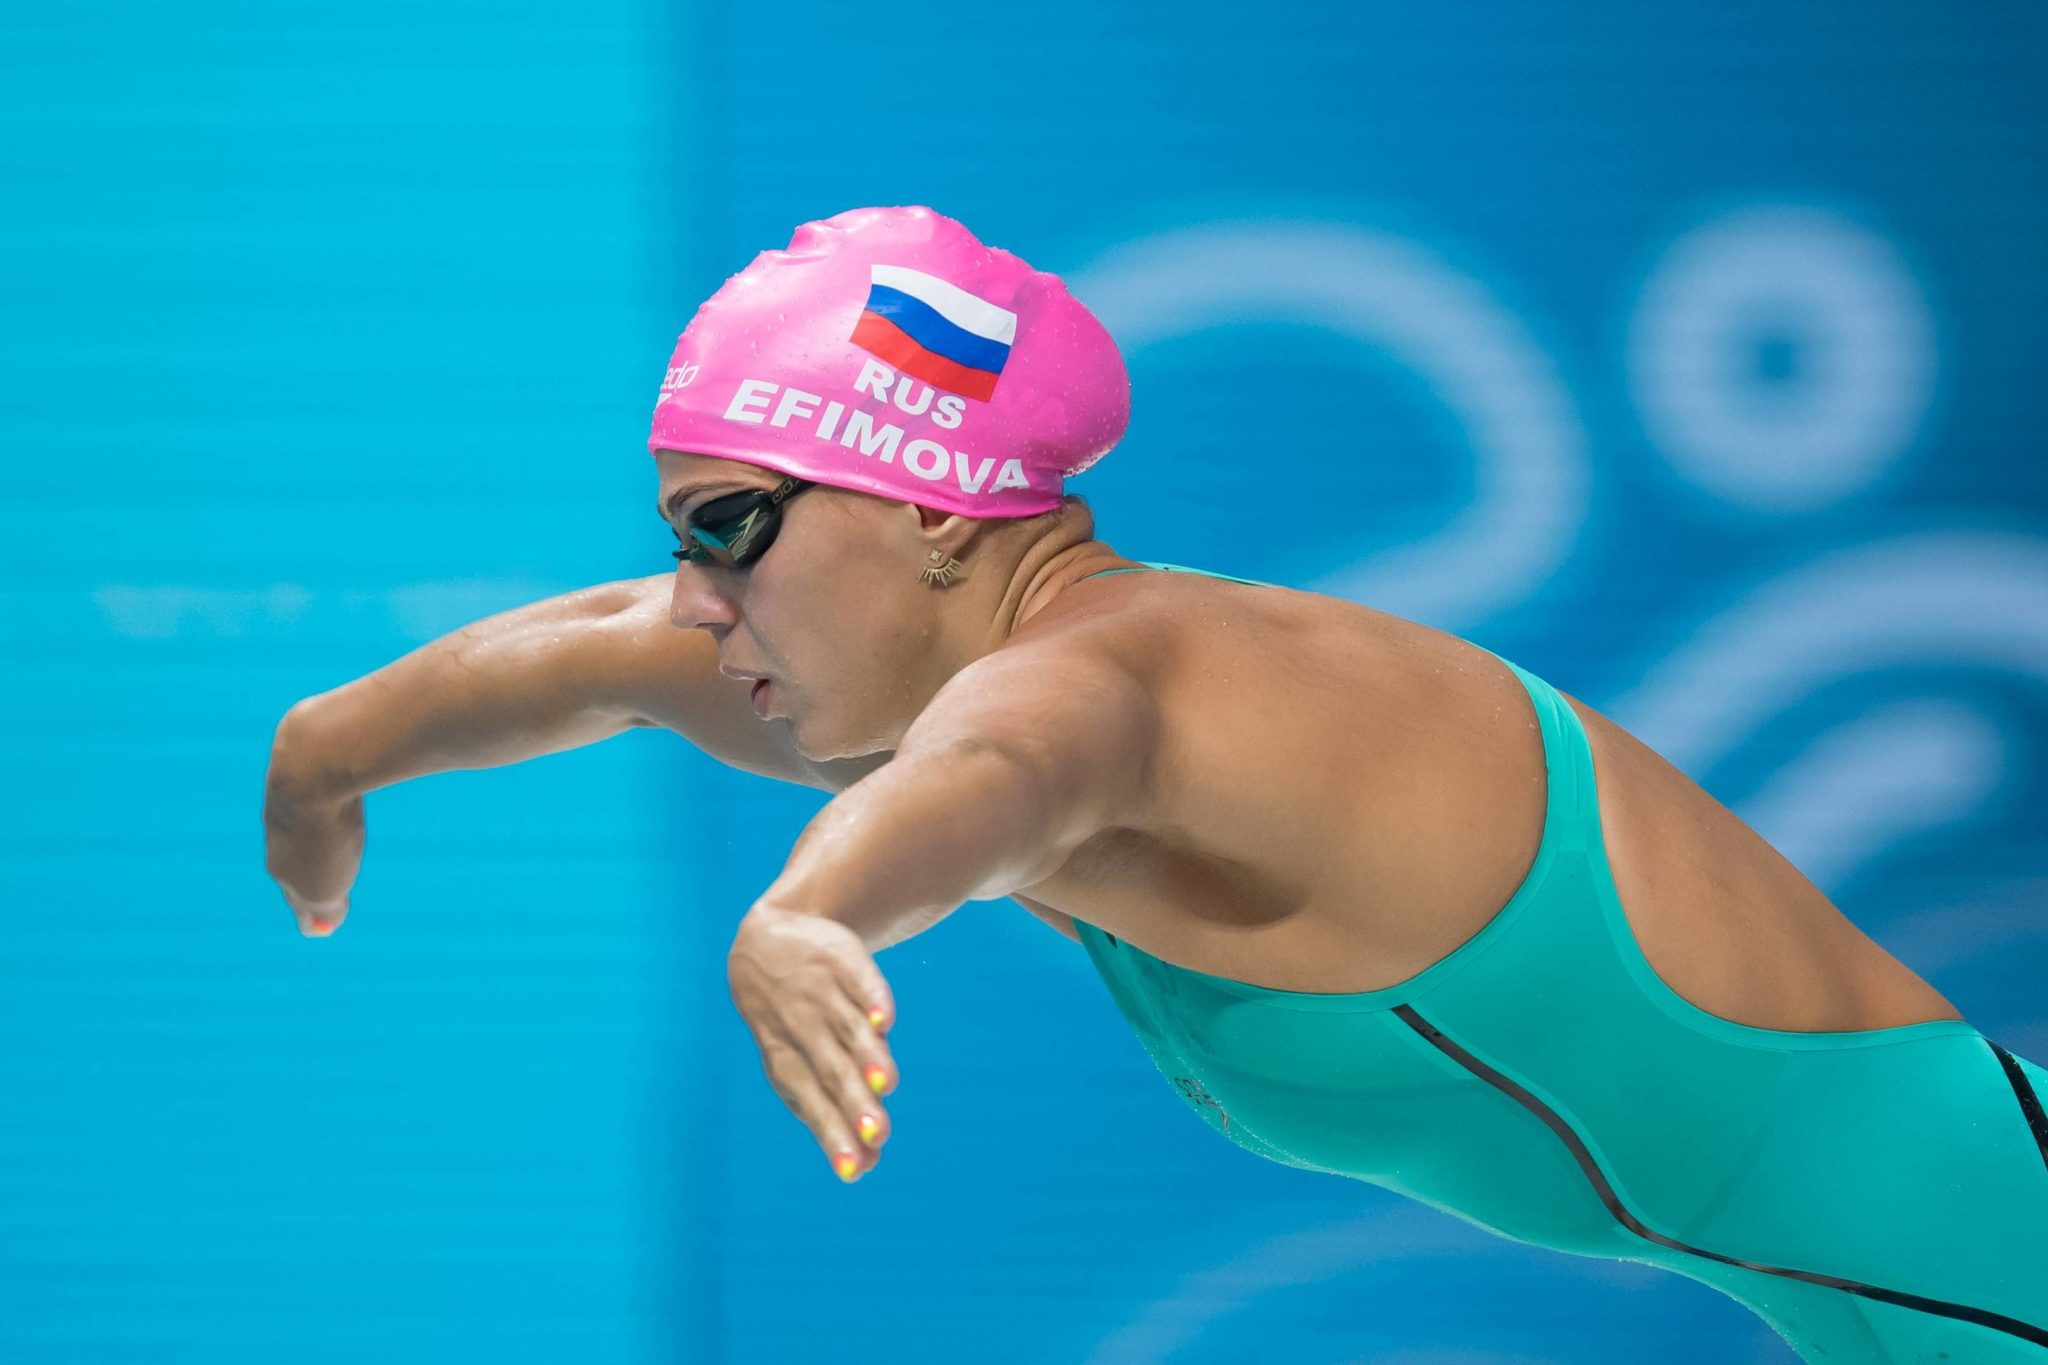 Russian Women Break European Record To Win Medley Relay Silver